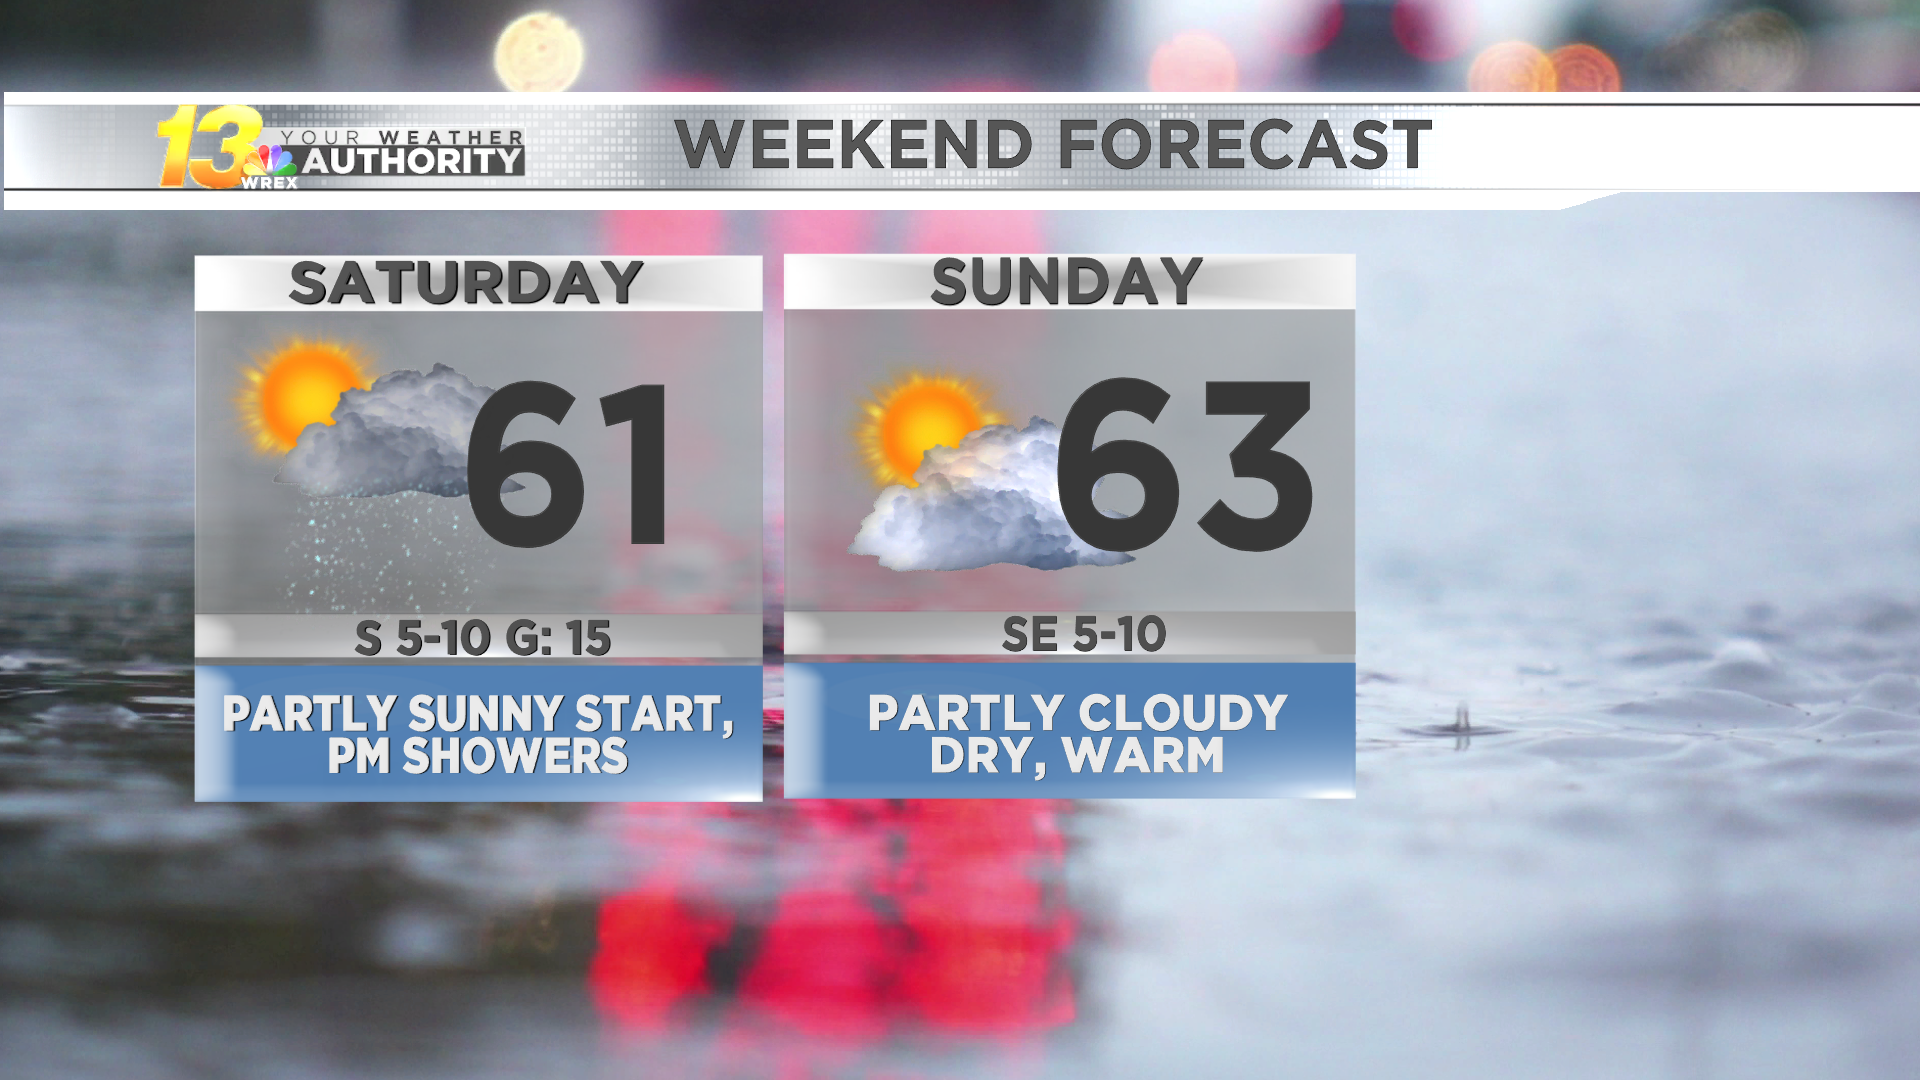 Rain chances are ahead this weekend